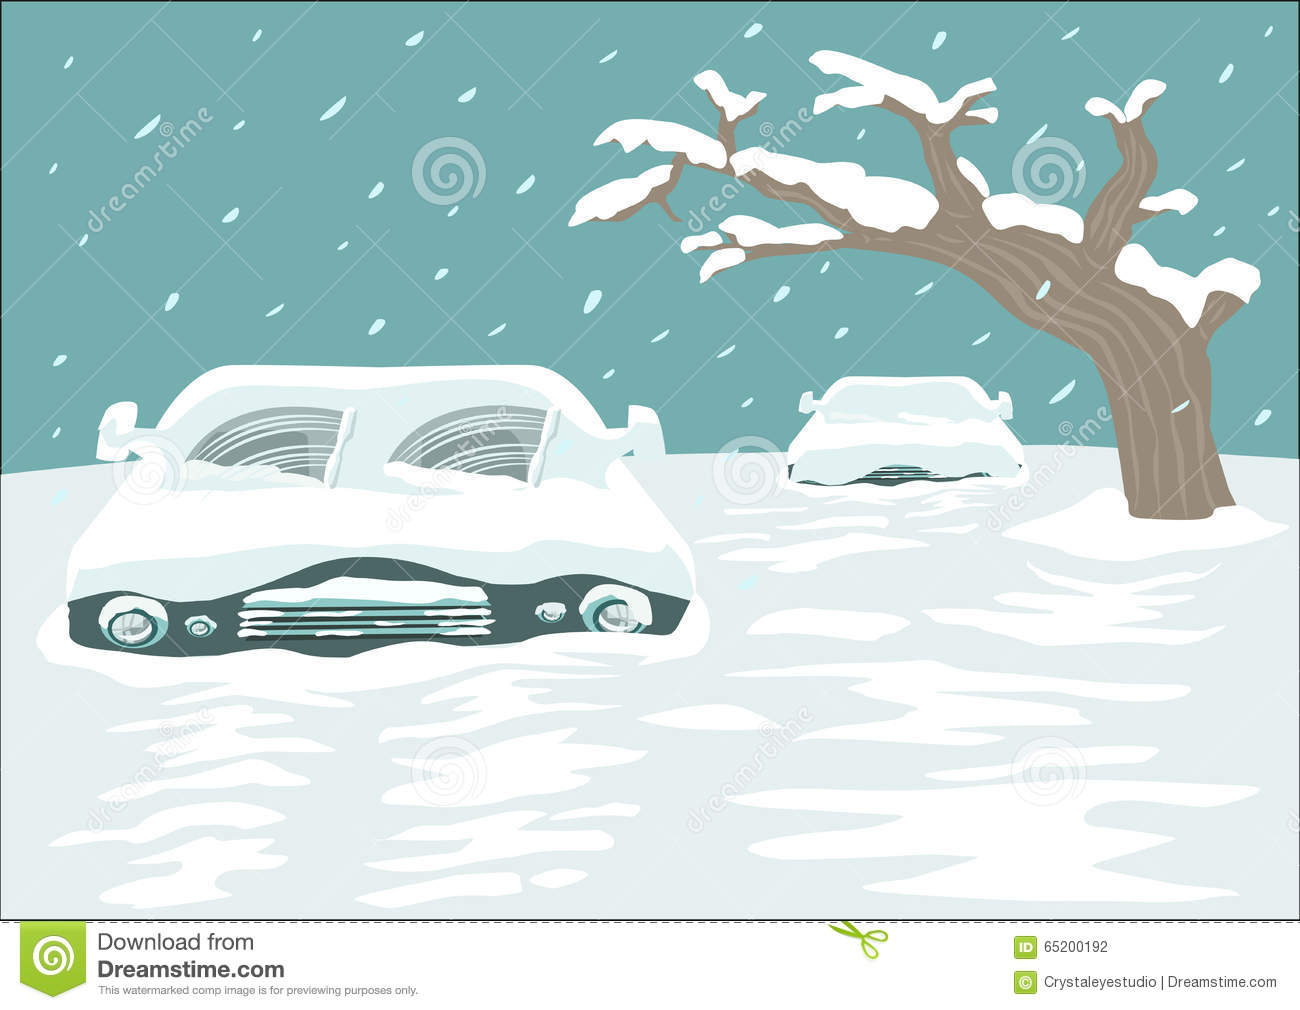 Pencil and in color. Blizzard clipart snow ground